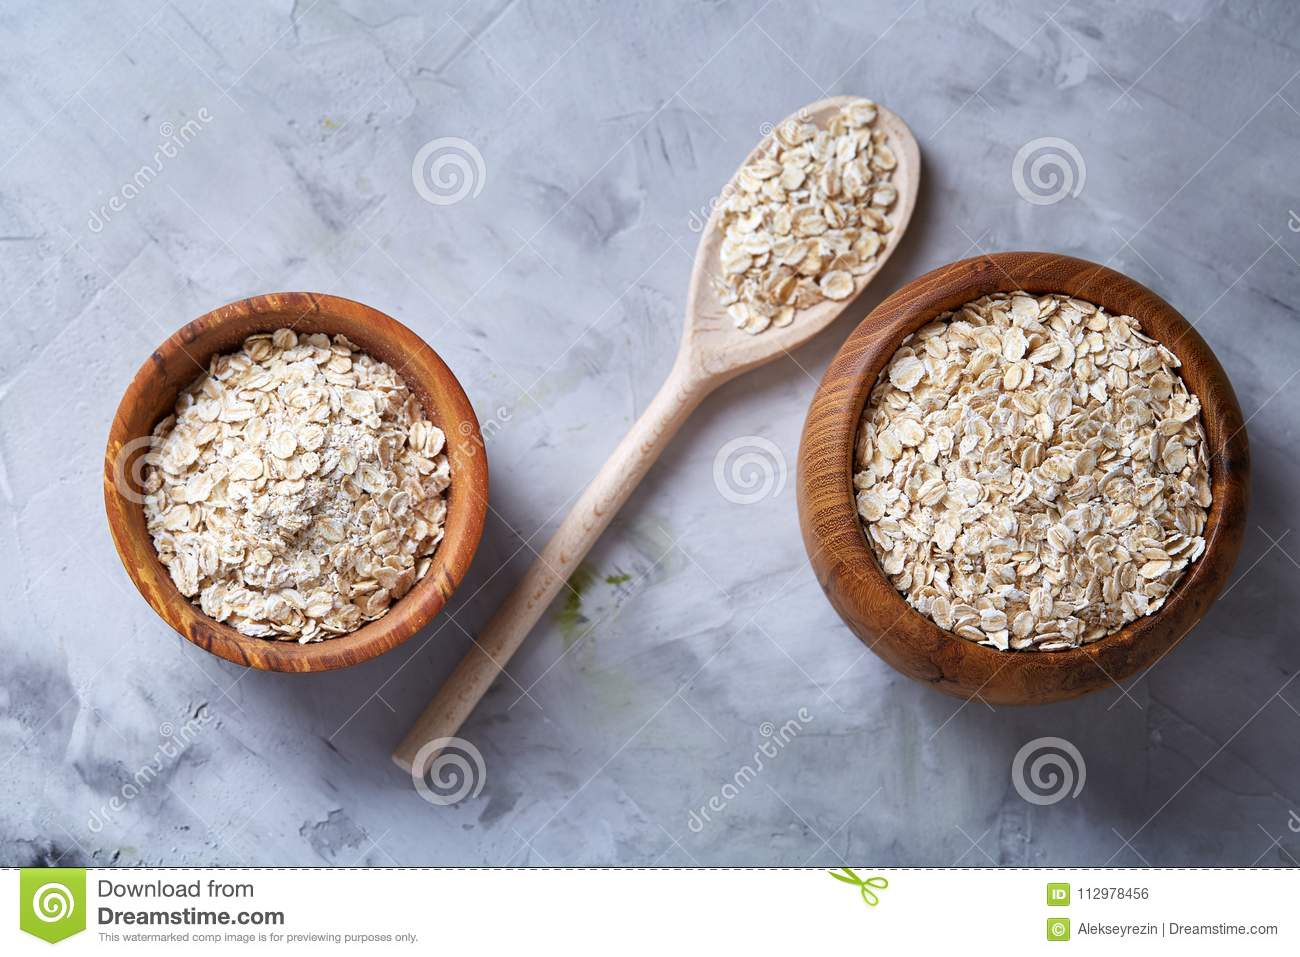 Oat flakes in bowl and wooden spoon on wooden background, close-up, top view, selective focus.